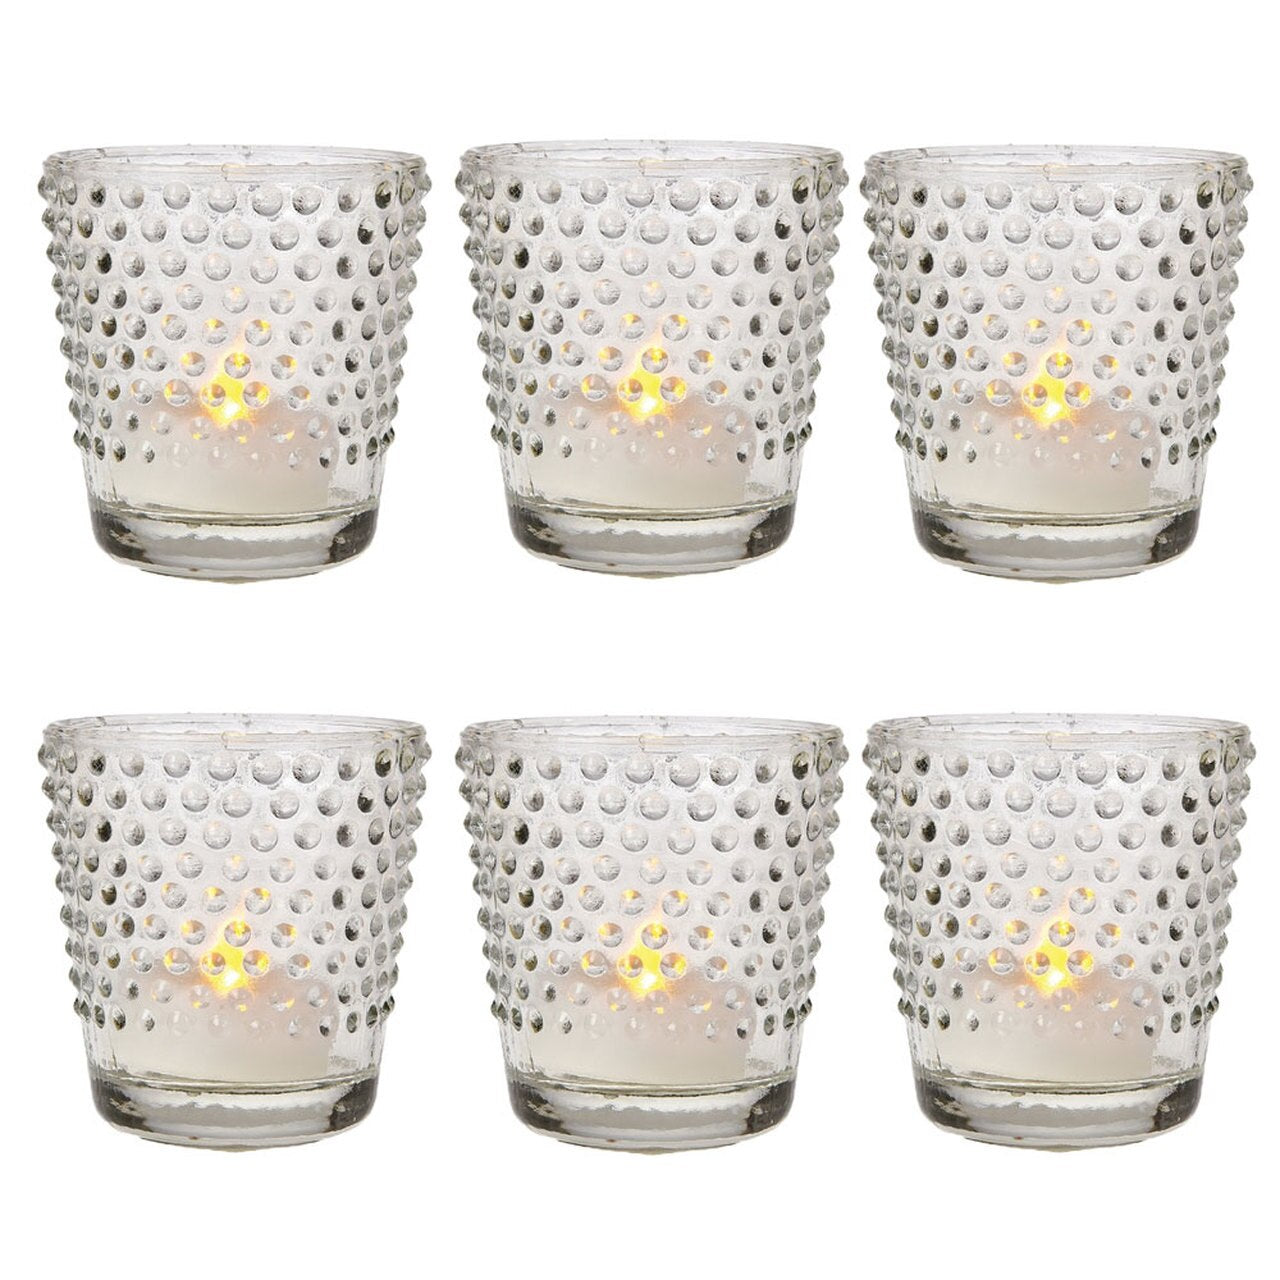 6 Pack | Glass Candle Holder (2.5-Inch, Candace Design, Hobnail Motif, Clear) - Use with Tea Lights - For Home Decor, Parties, and Wedding Decorations